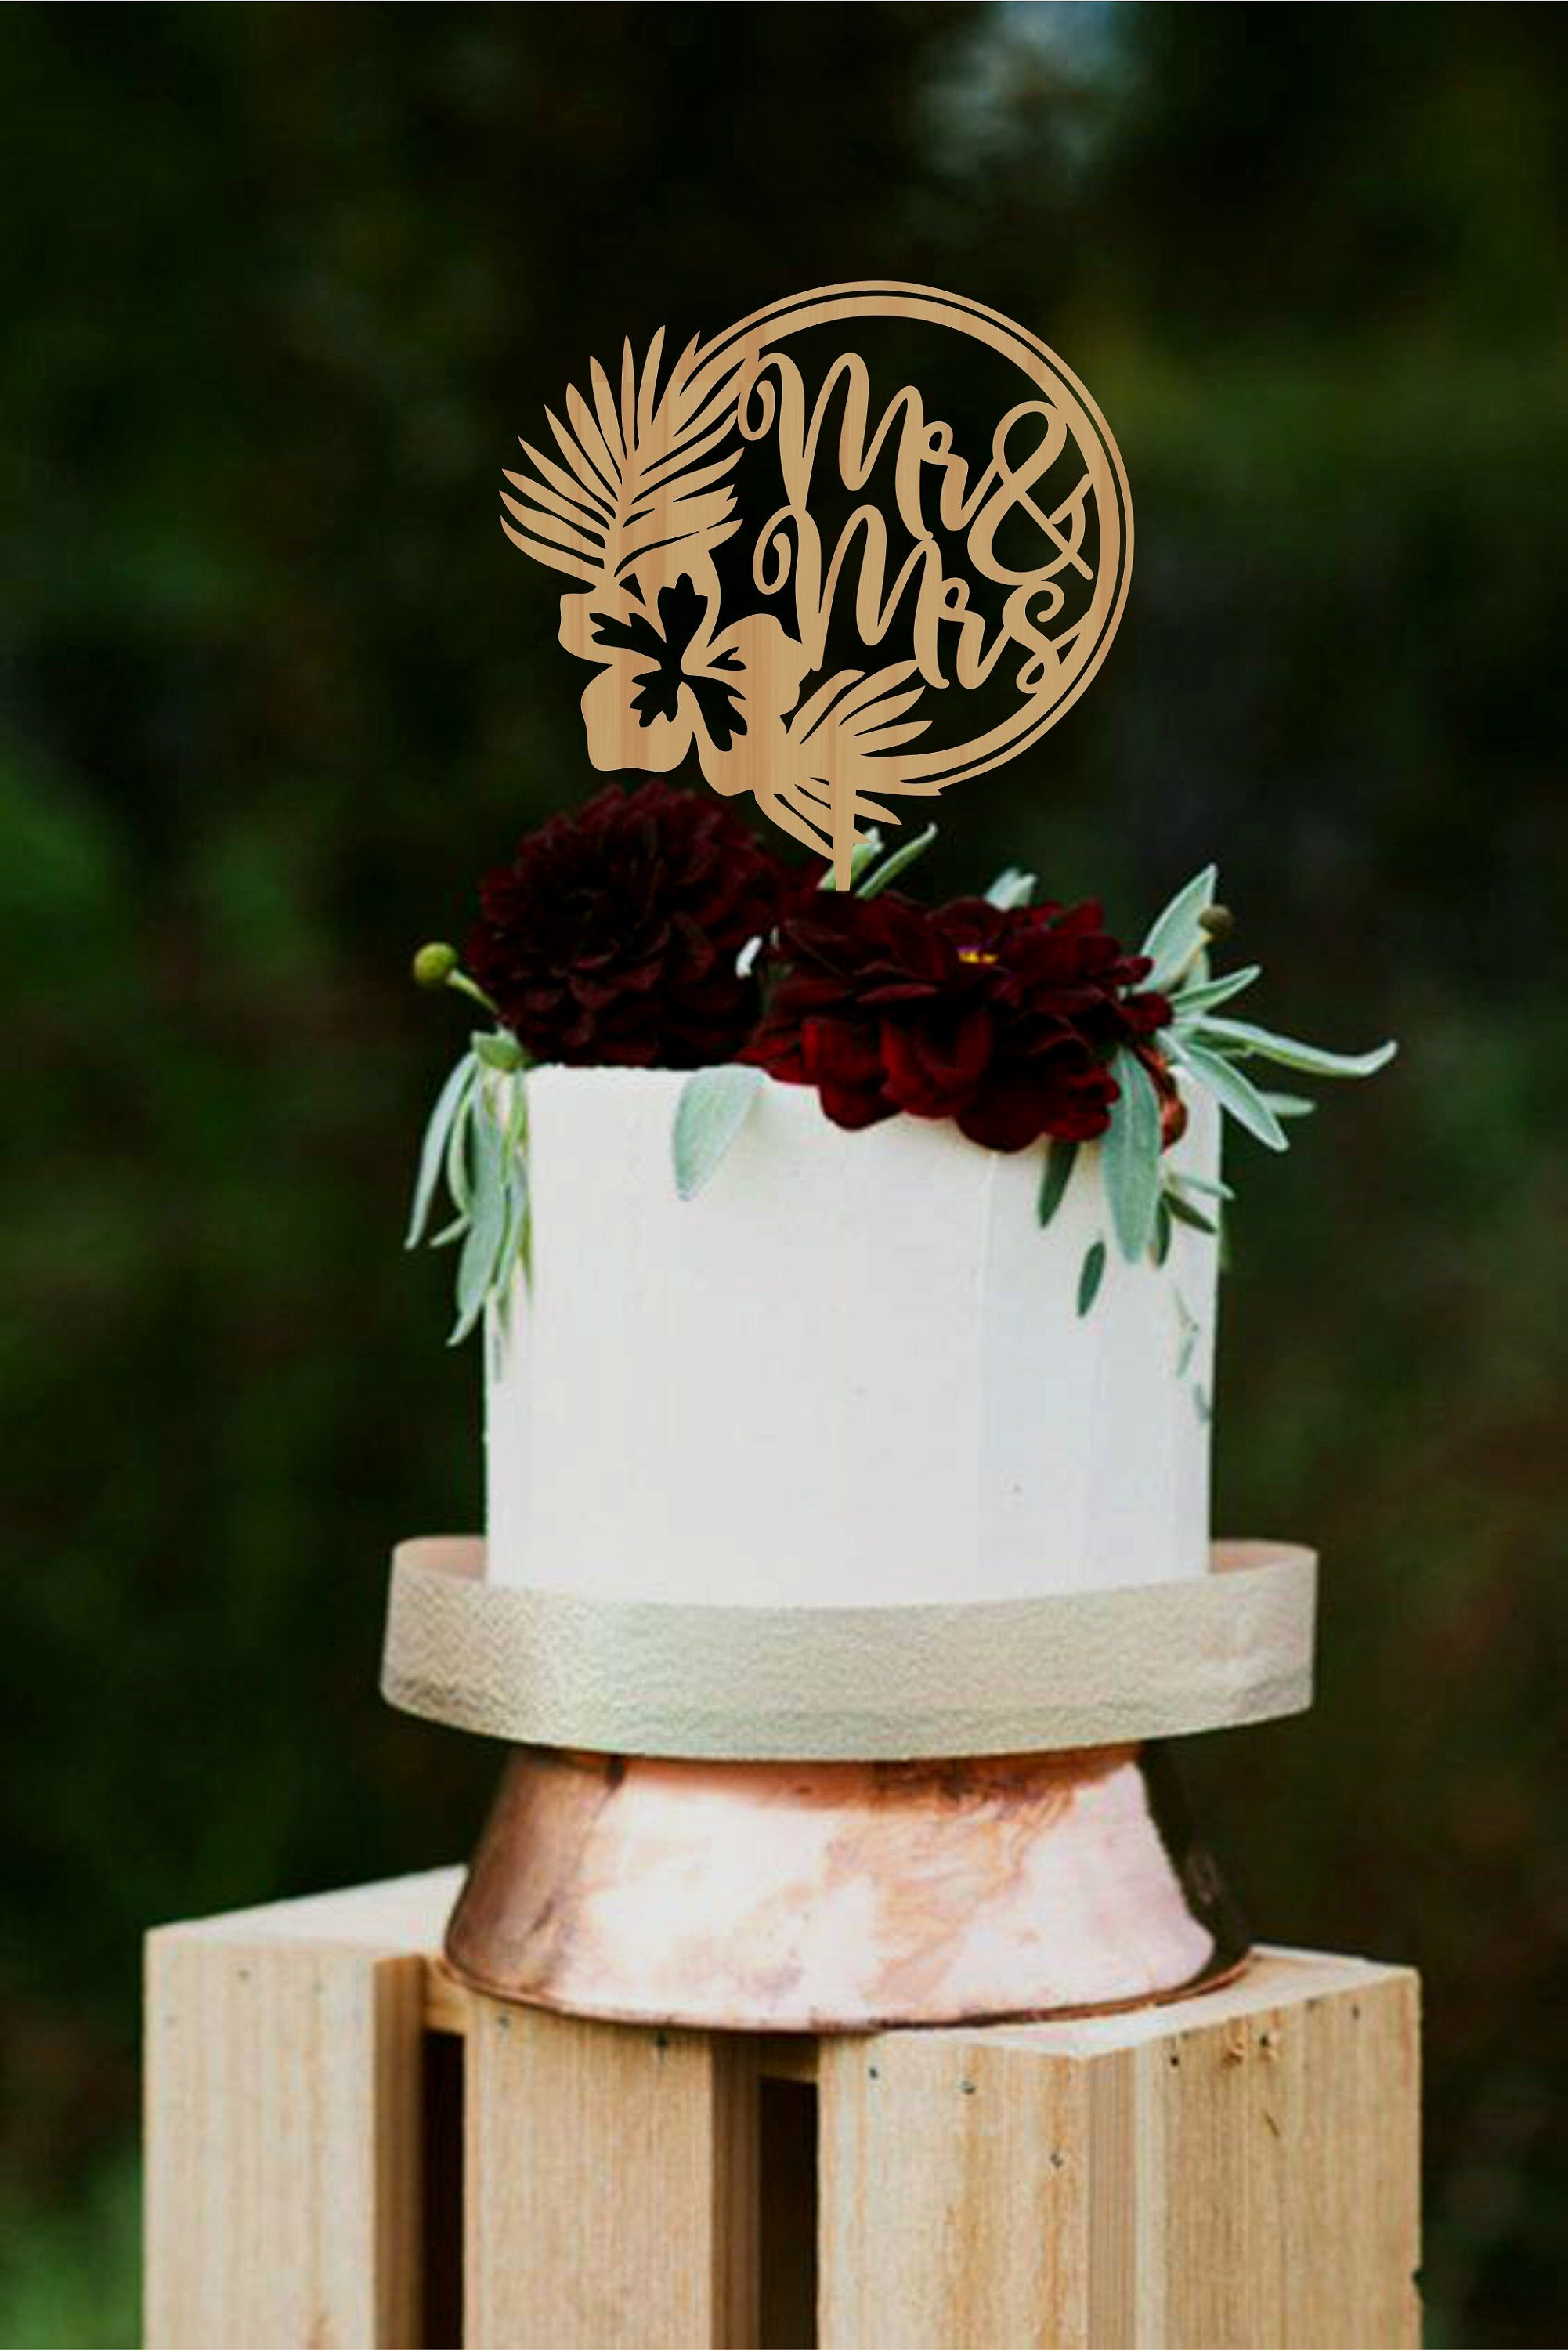 Personalized Mr And Mrs Cake Topper Mr And Mrs Cake Topper Gold Mr And Mrs Cake Topper Walmart In 2020 Geometric Cake Topper Custom Cake Toppers Tropical Wedding Cake